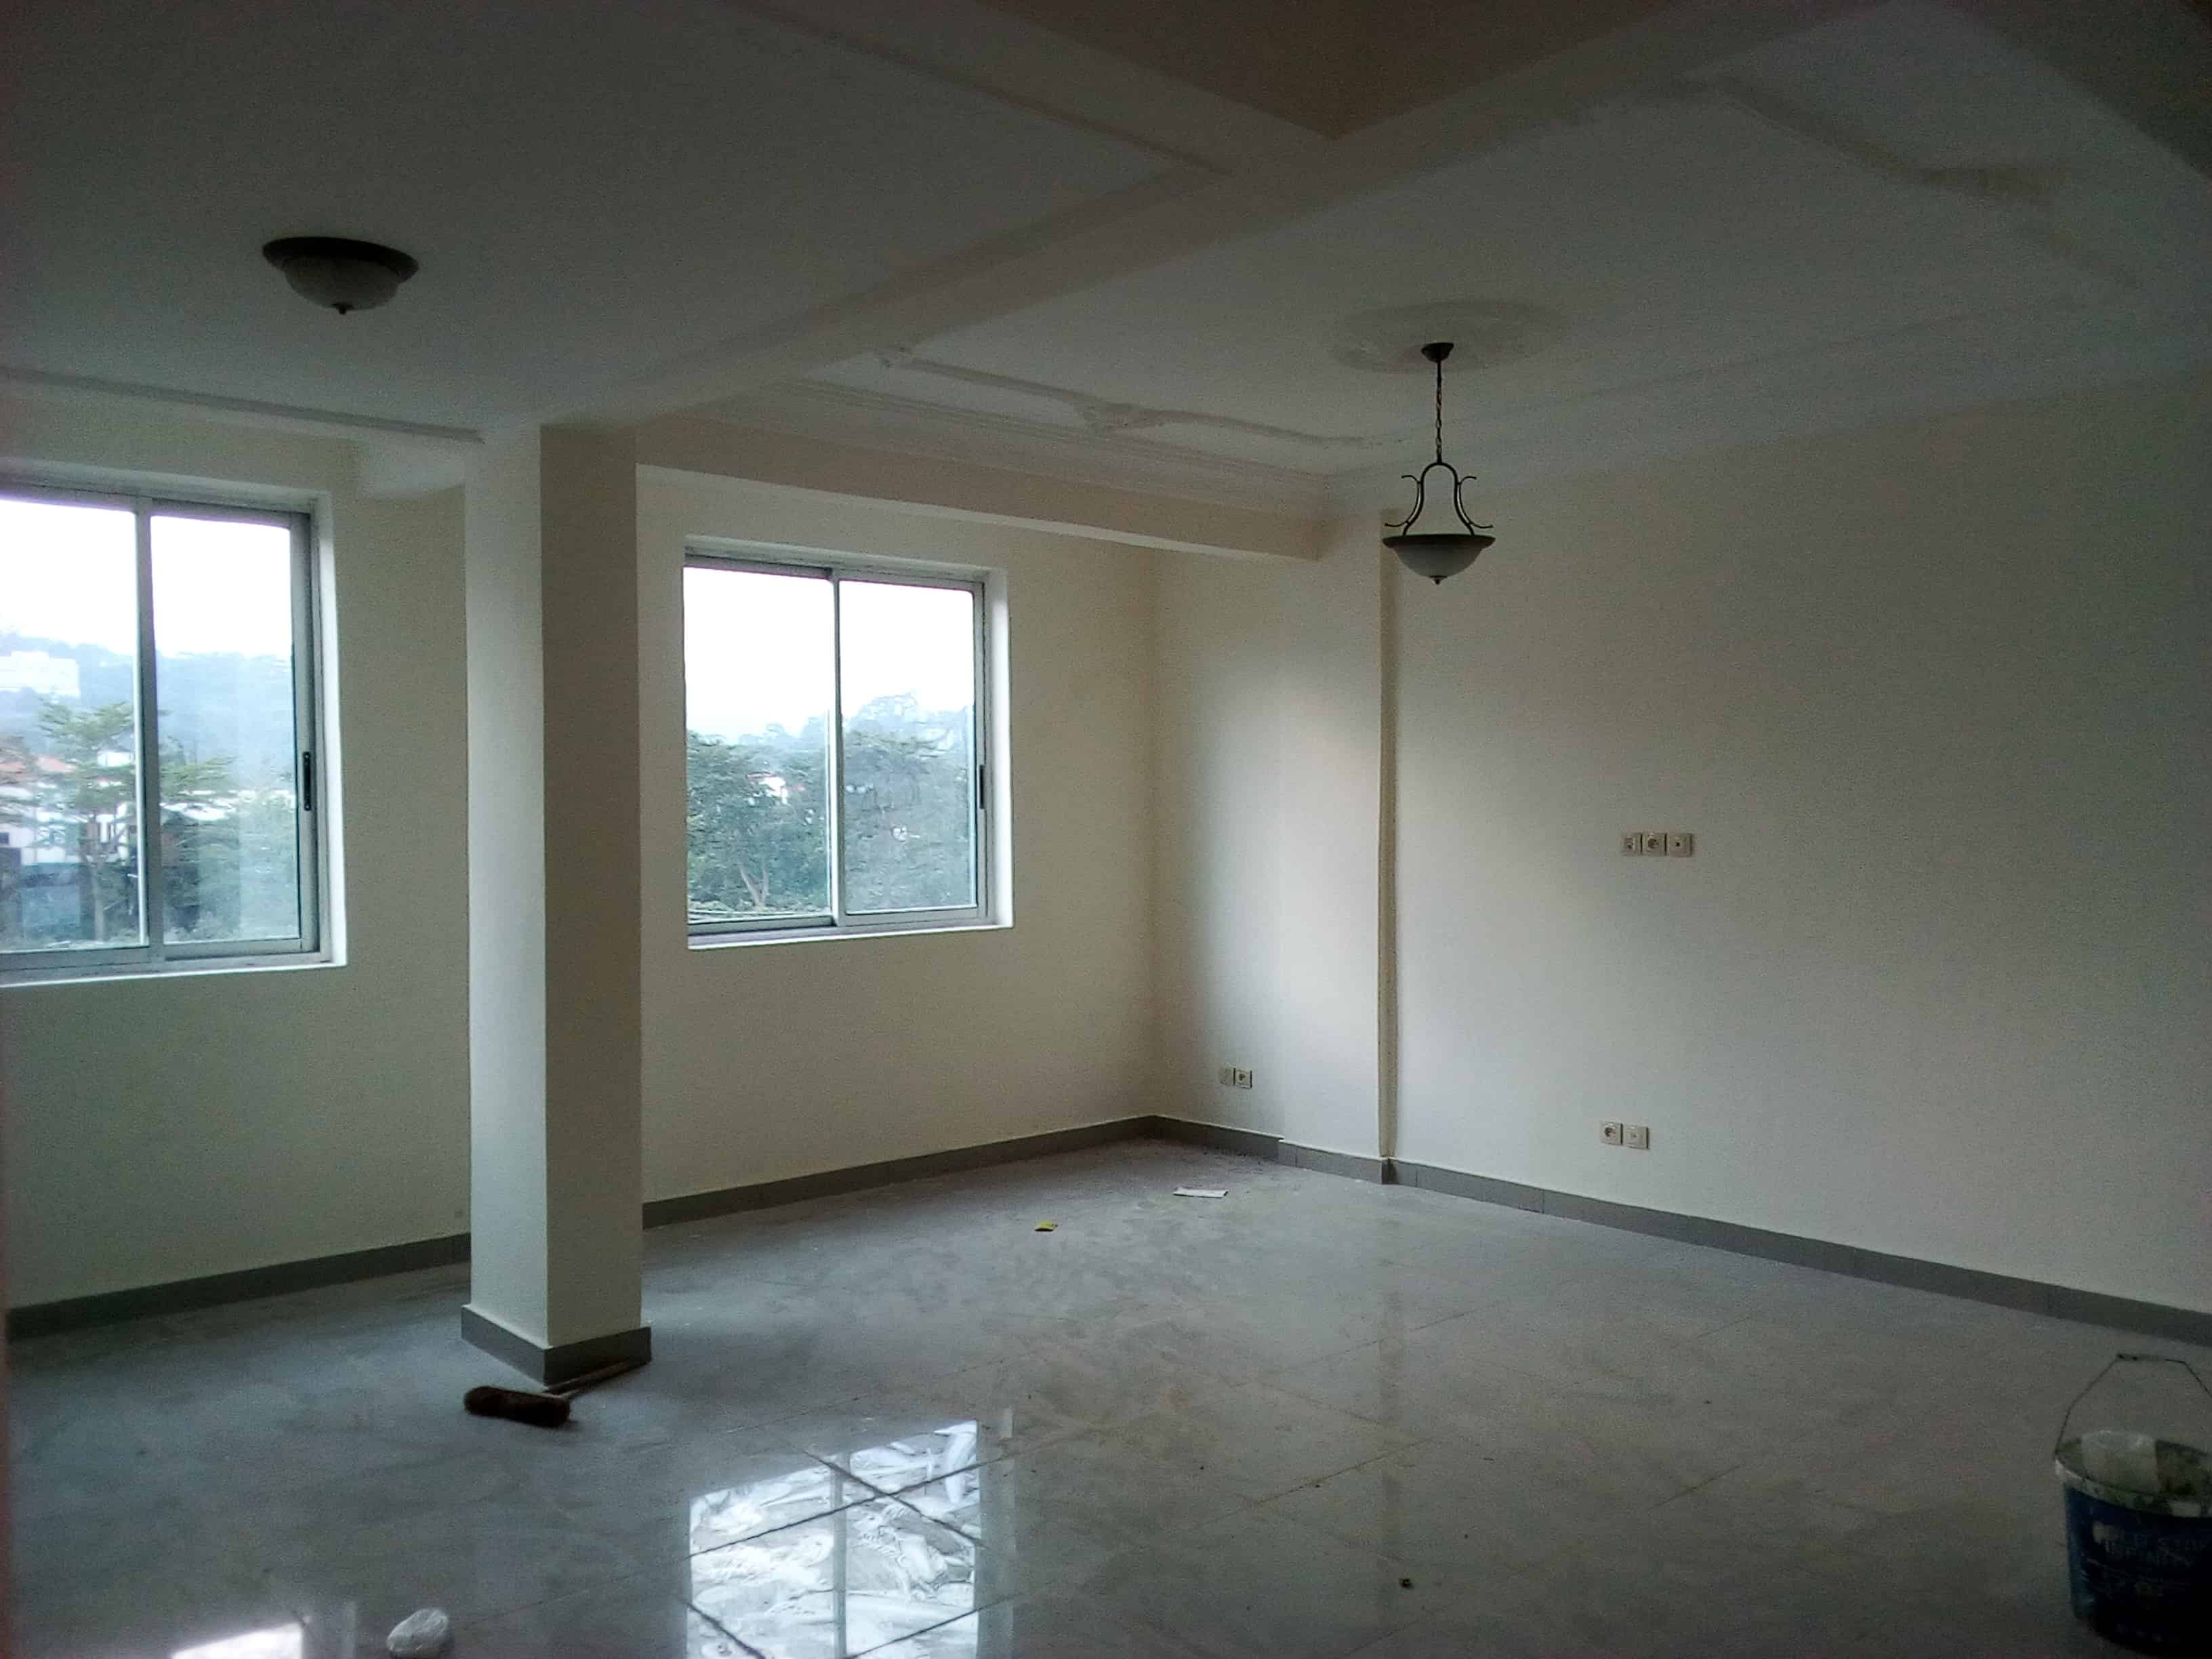 Office to rent at Yaoundé, Bastos, pas loin de institut gueutch - 70 m2 - 600 000 FCFA